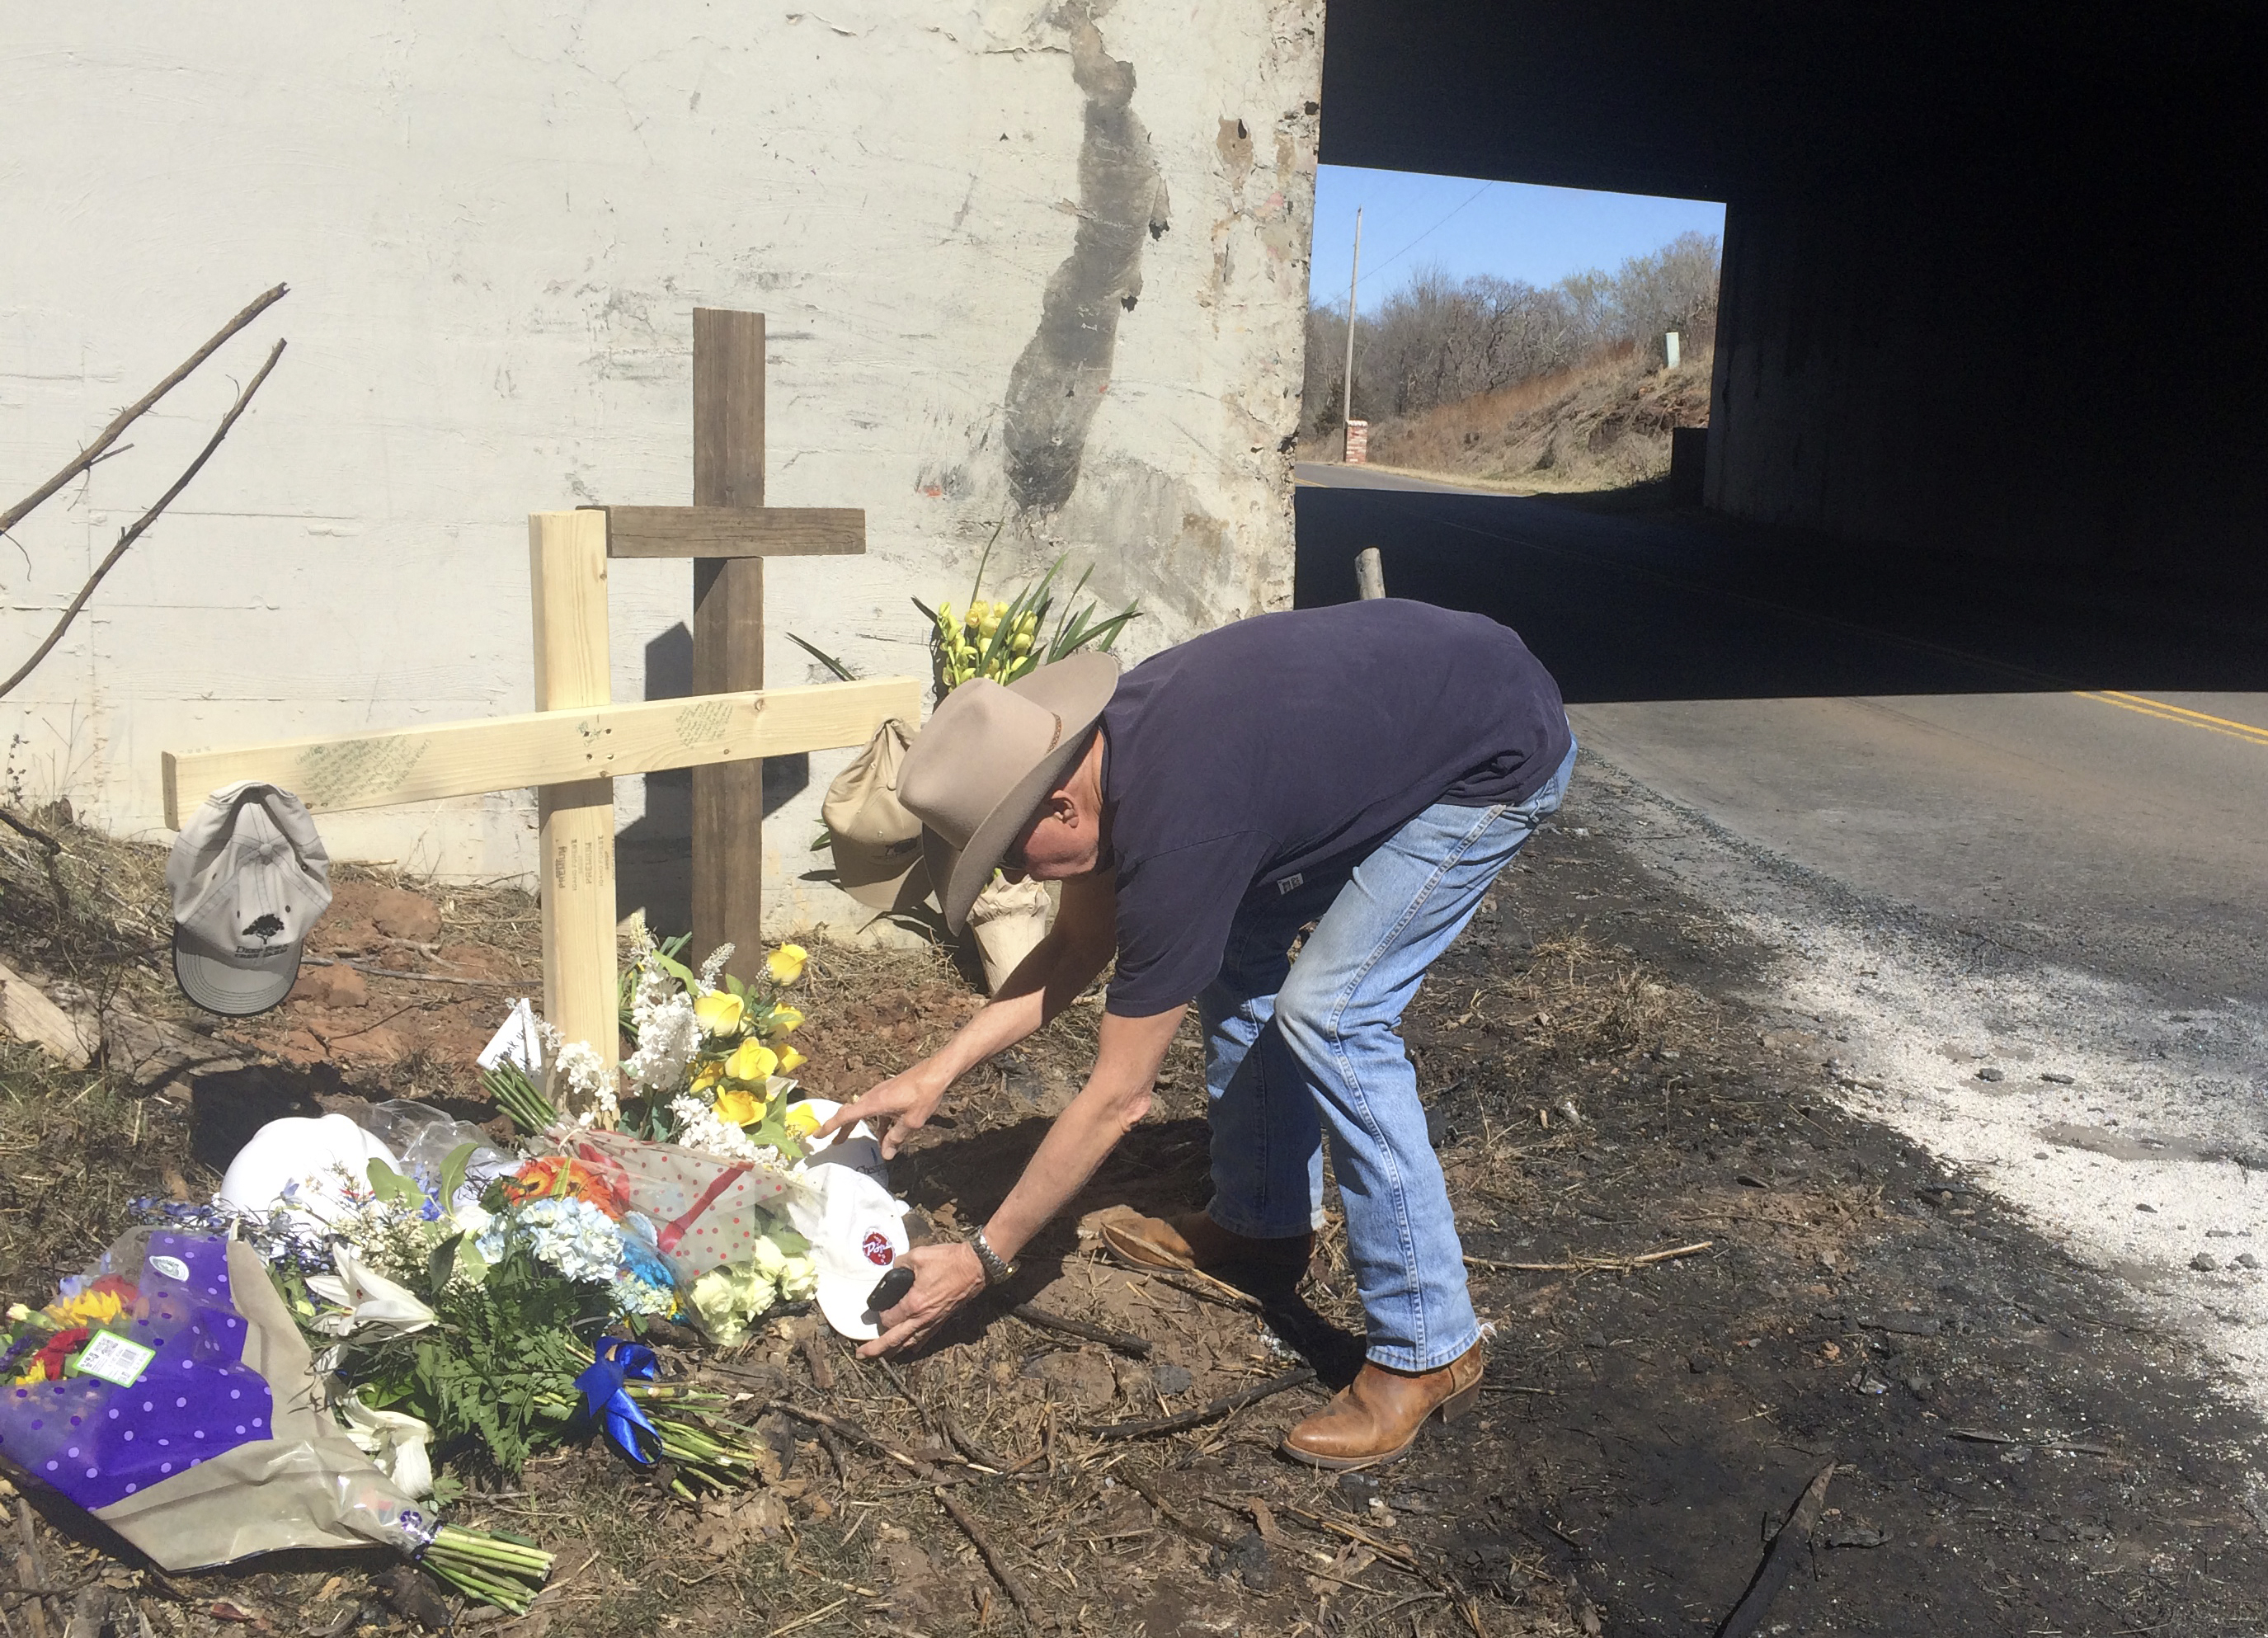 File photo of makeshift memorial to former Chesapeake Energy CEO Aubrey McClendon at the site of his fatal automobile accident in Oklahoma City